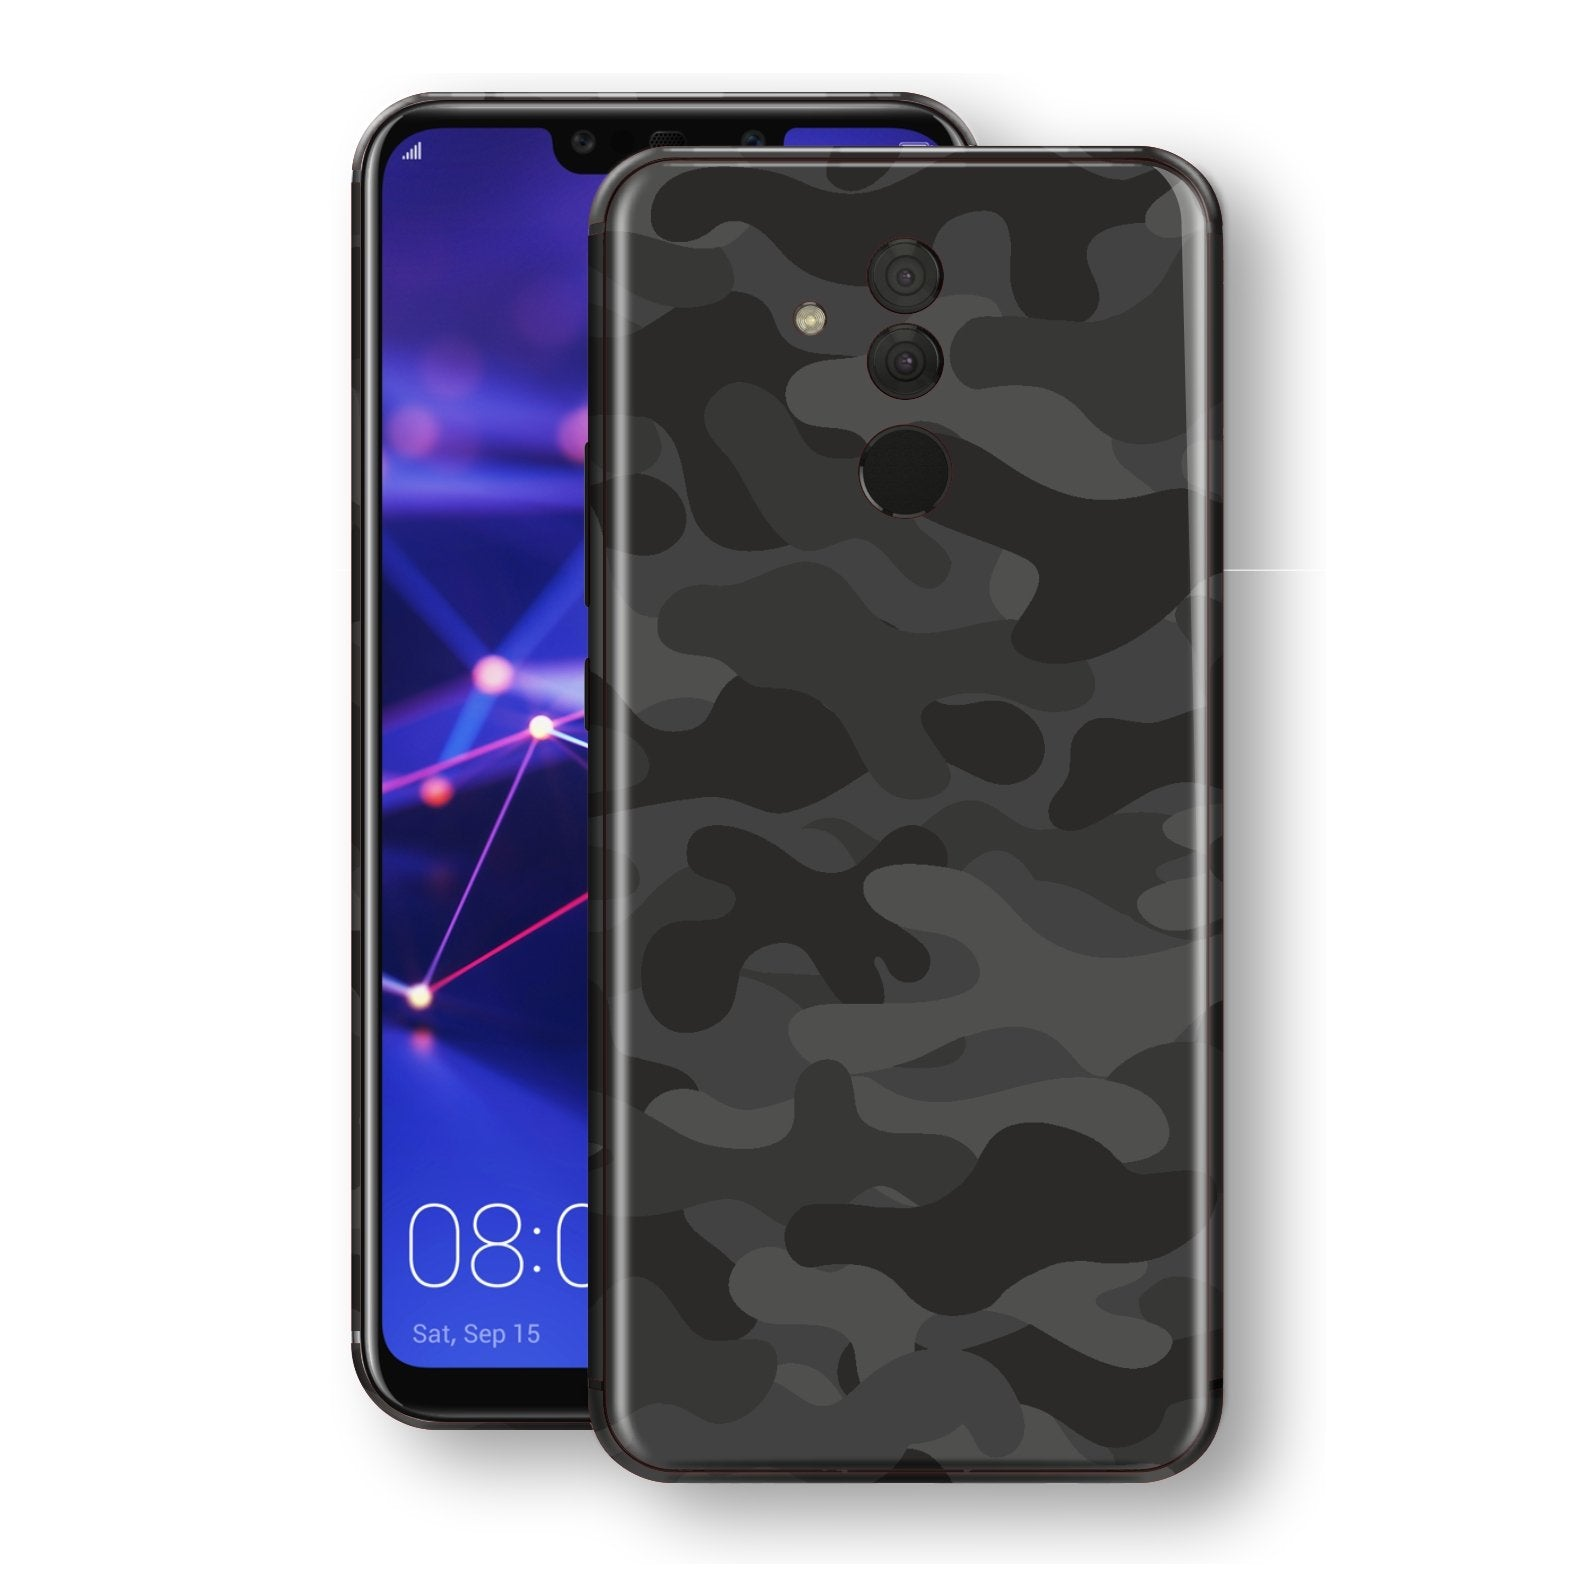 Huawei MATE 20 LITE Signature DARK SLATE CAMO Camouflage Skin Wrap Decal Cover by EasySkinz